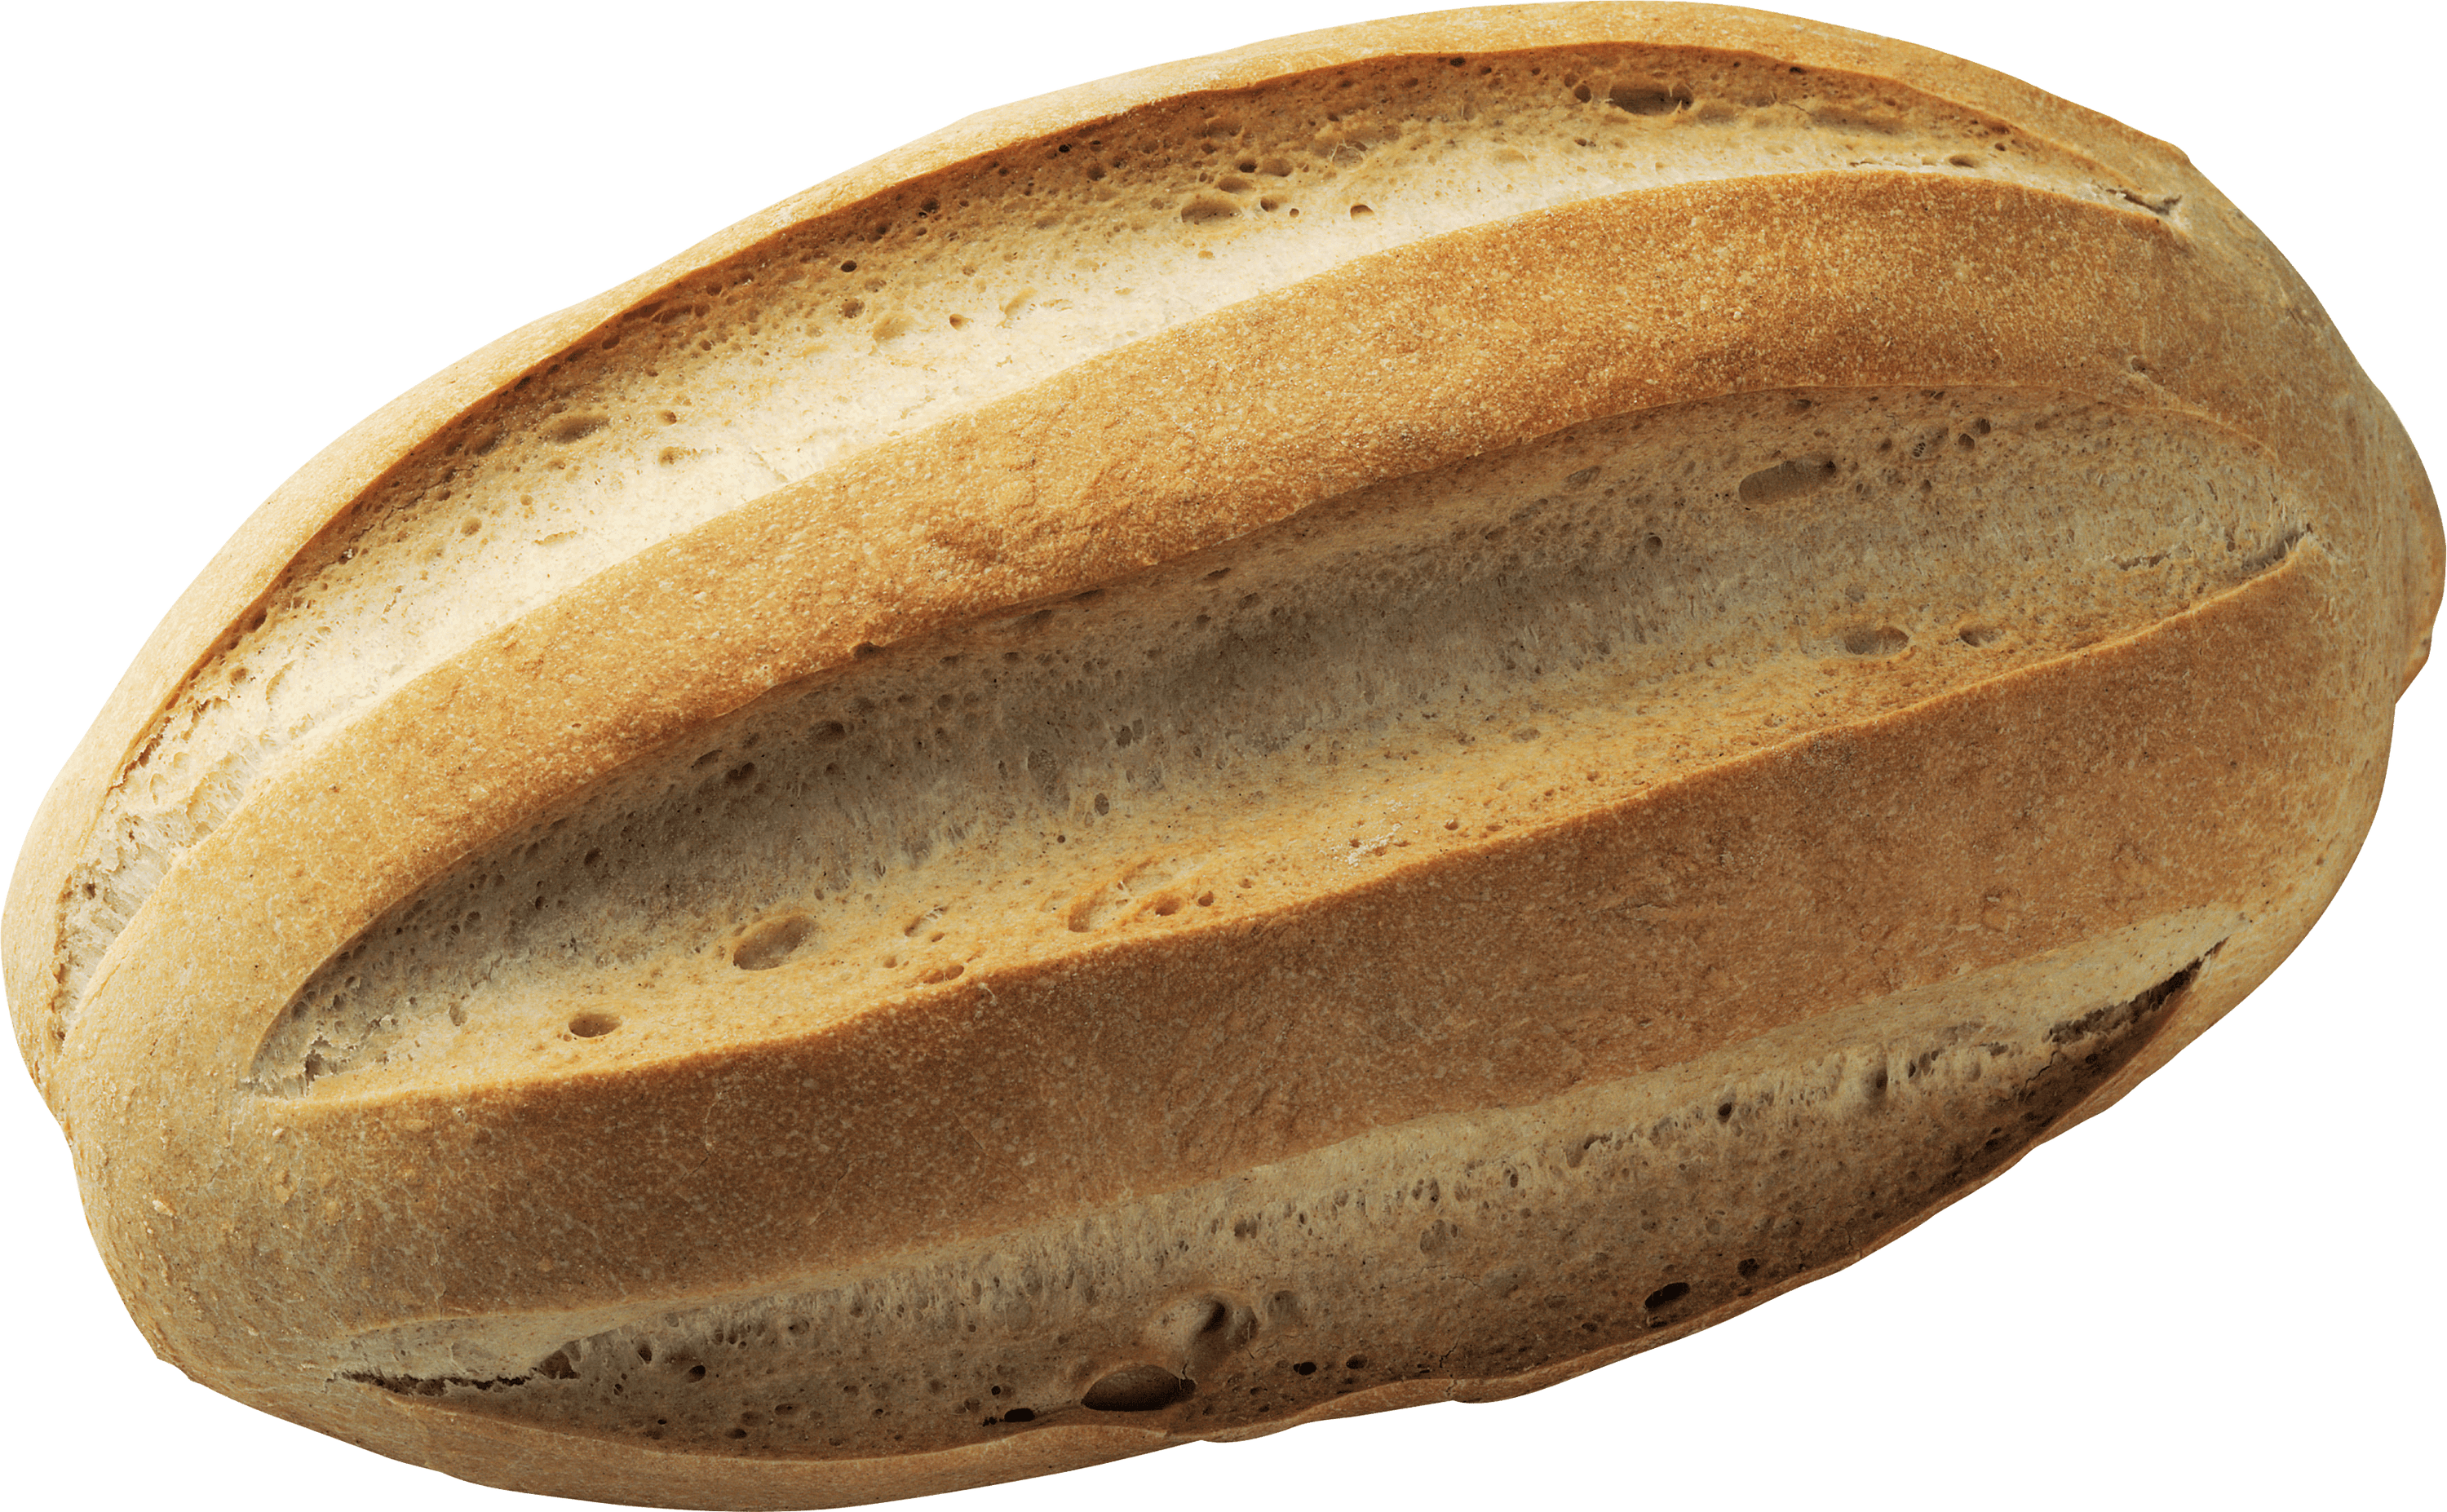 Wheat clipart loaf. Of brown bread transparent